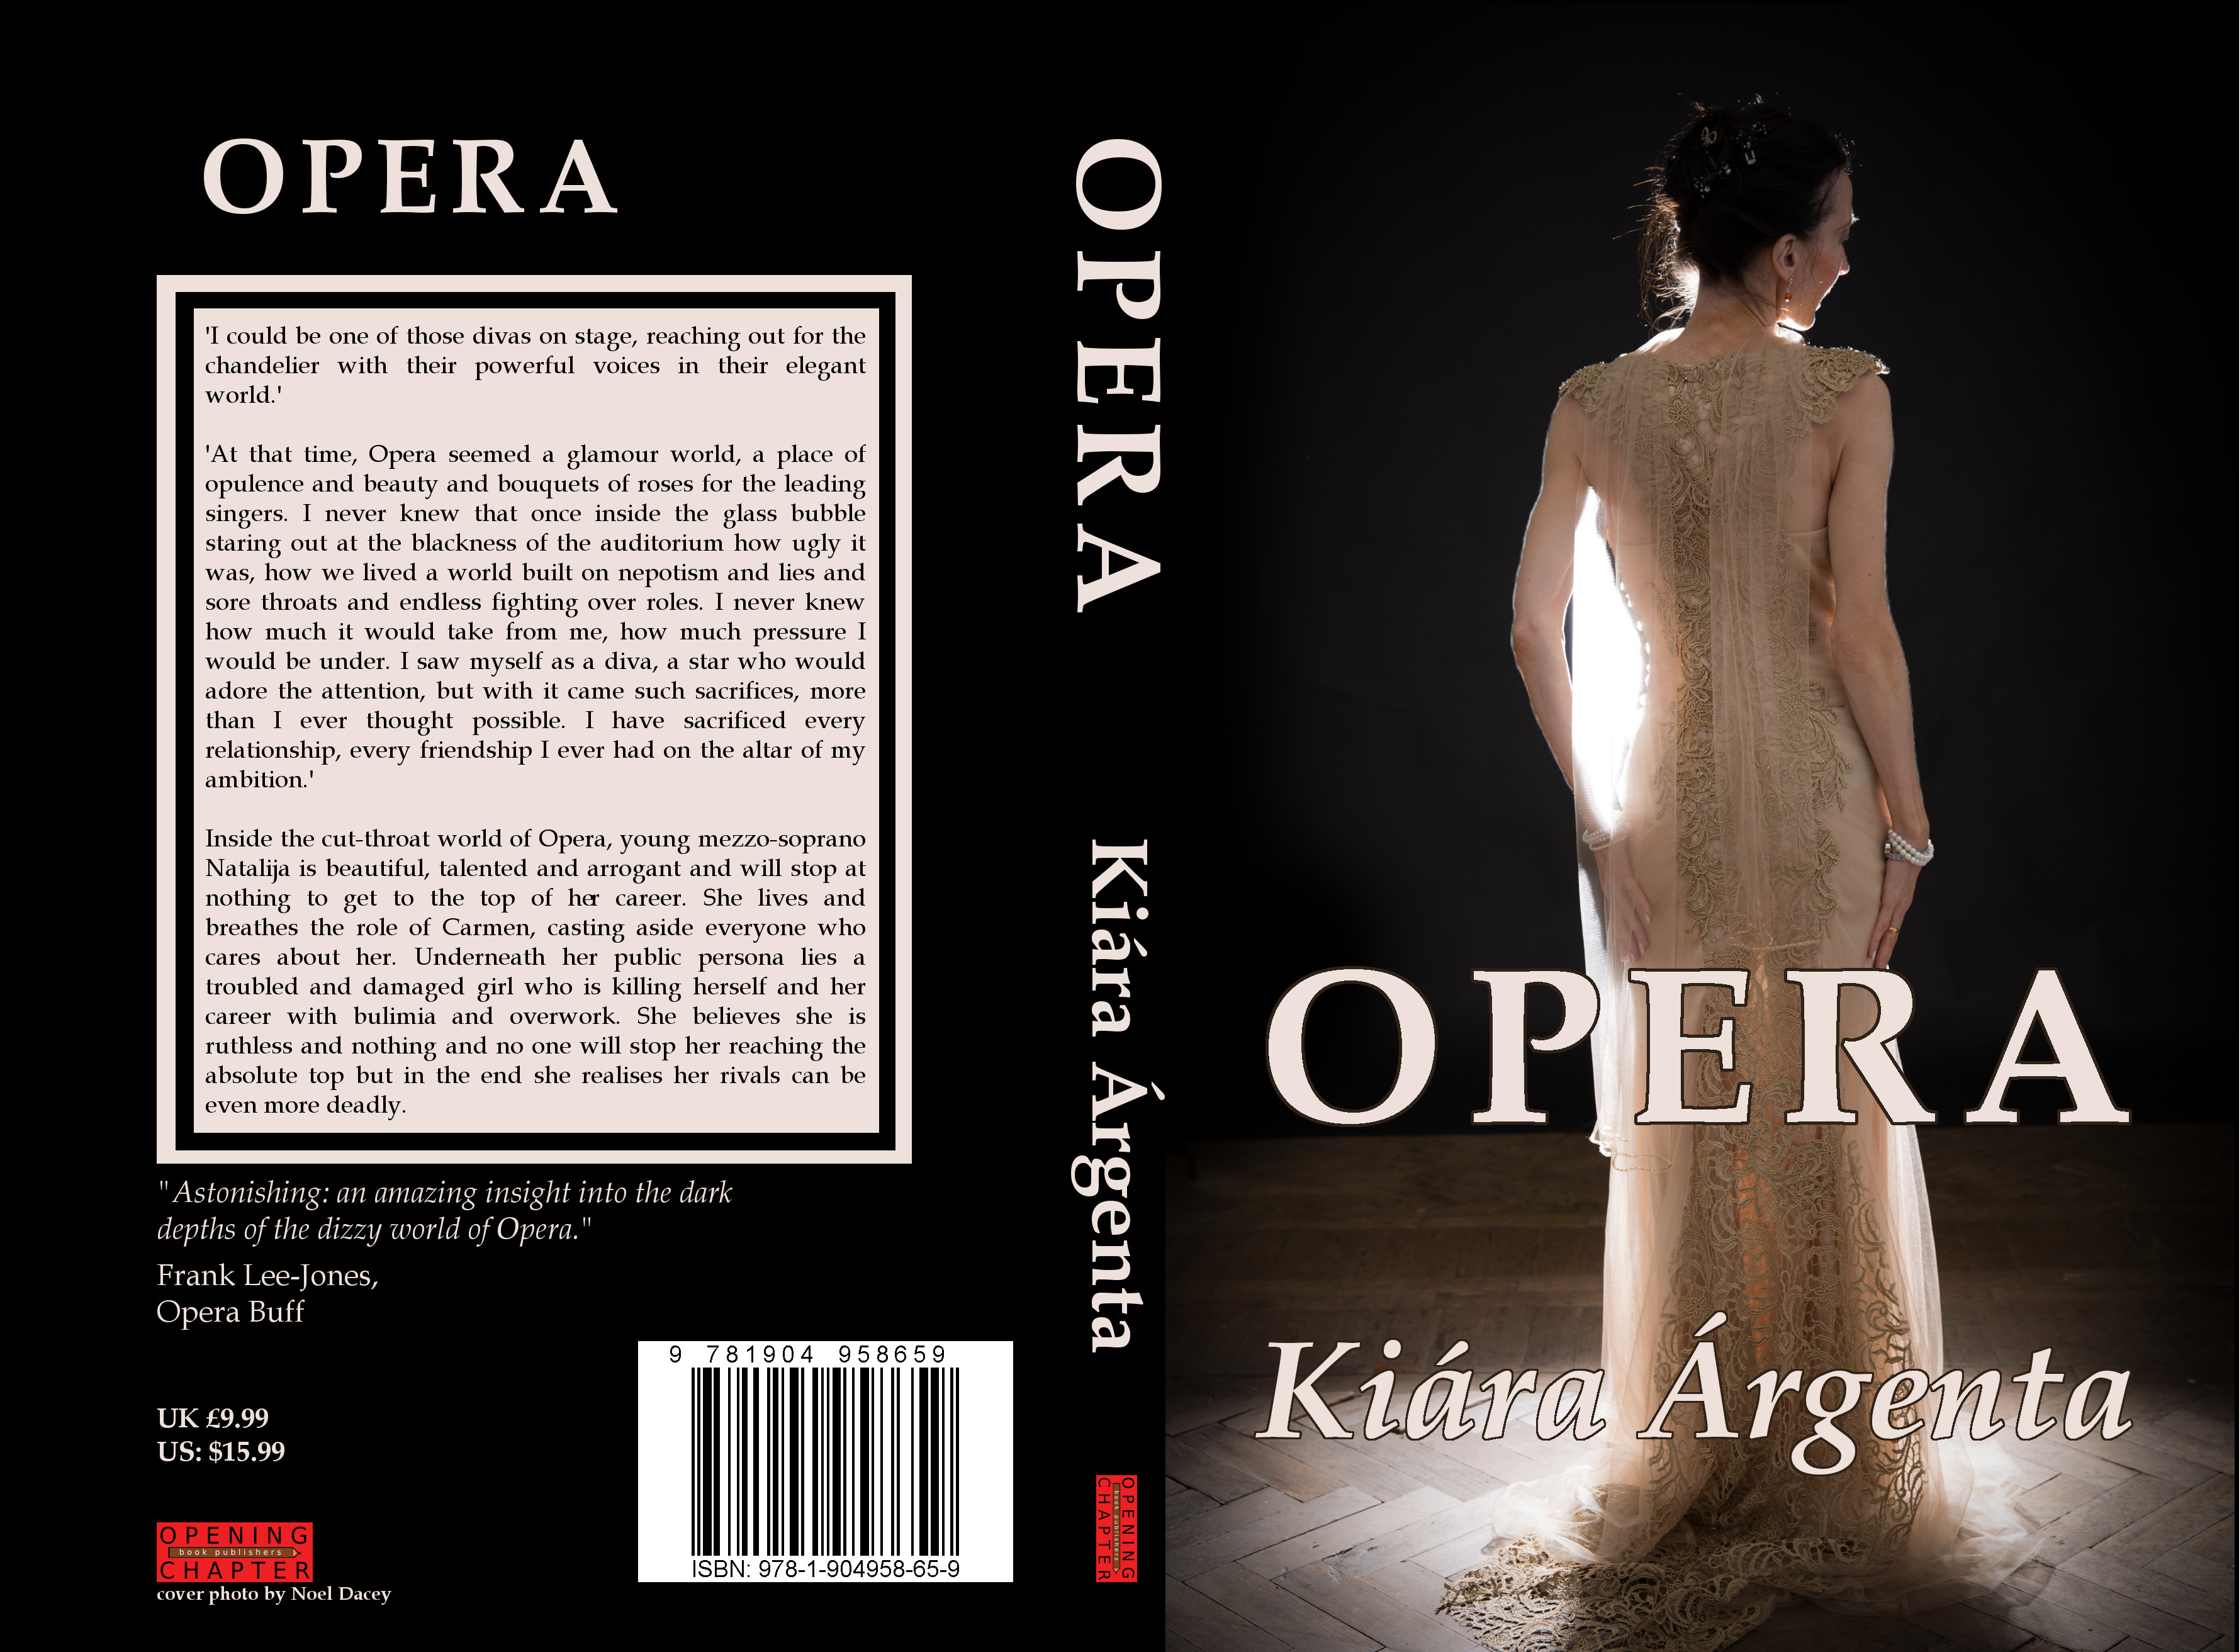 opera-cover-idea01-full